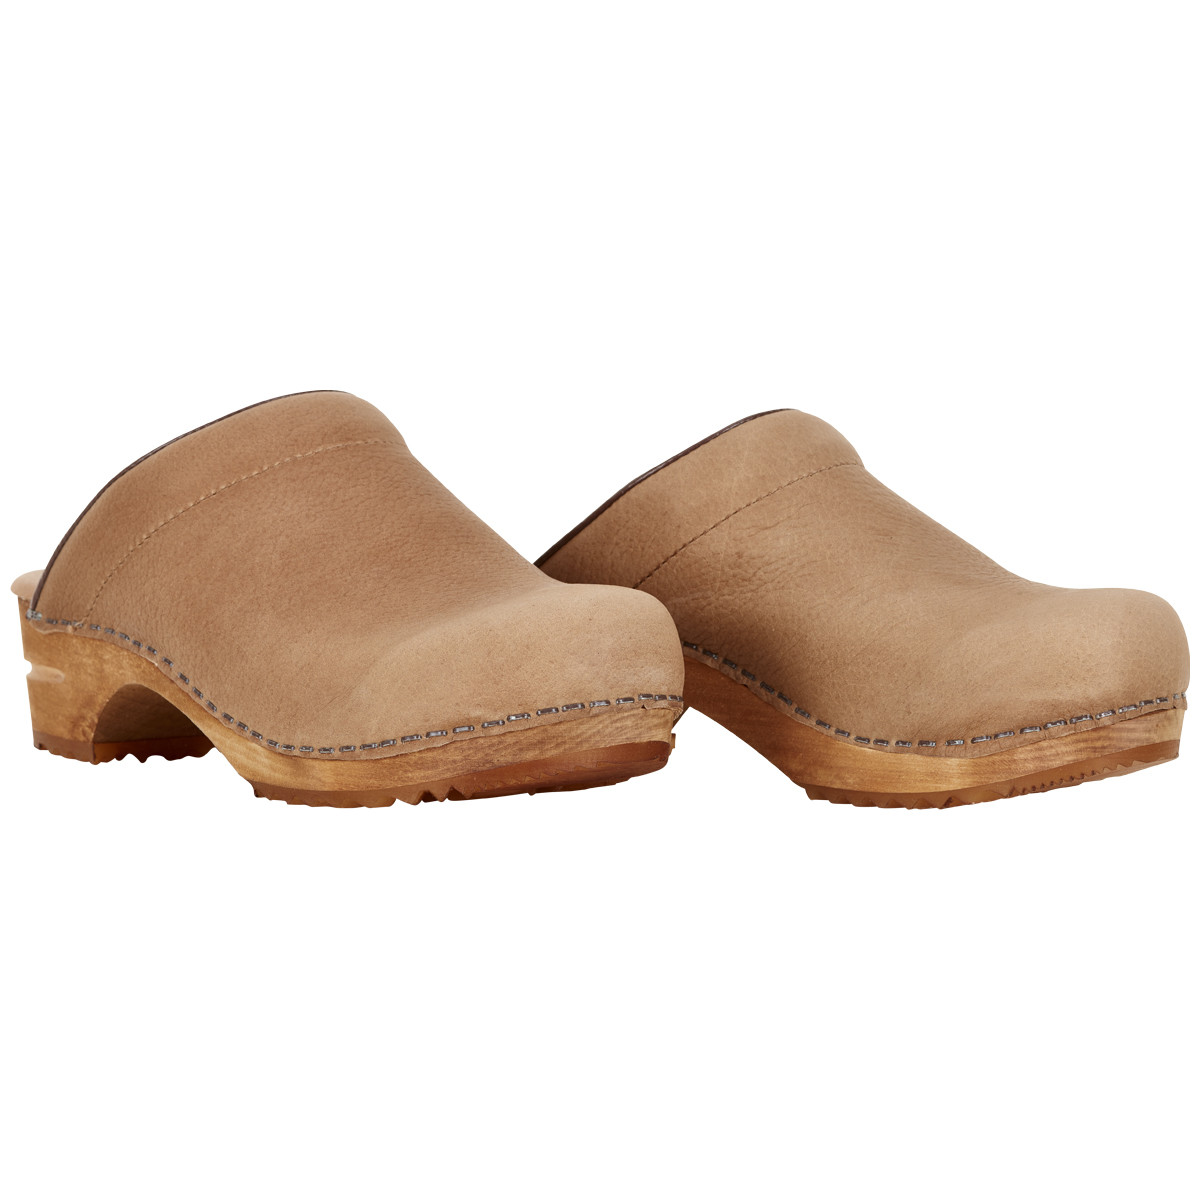 SANITA SIRKIT CLOGS 457438 14